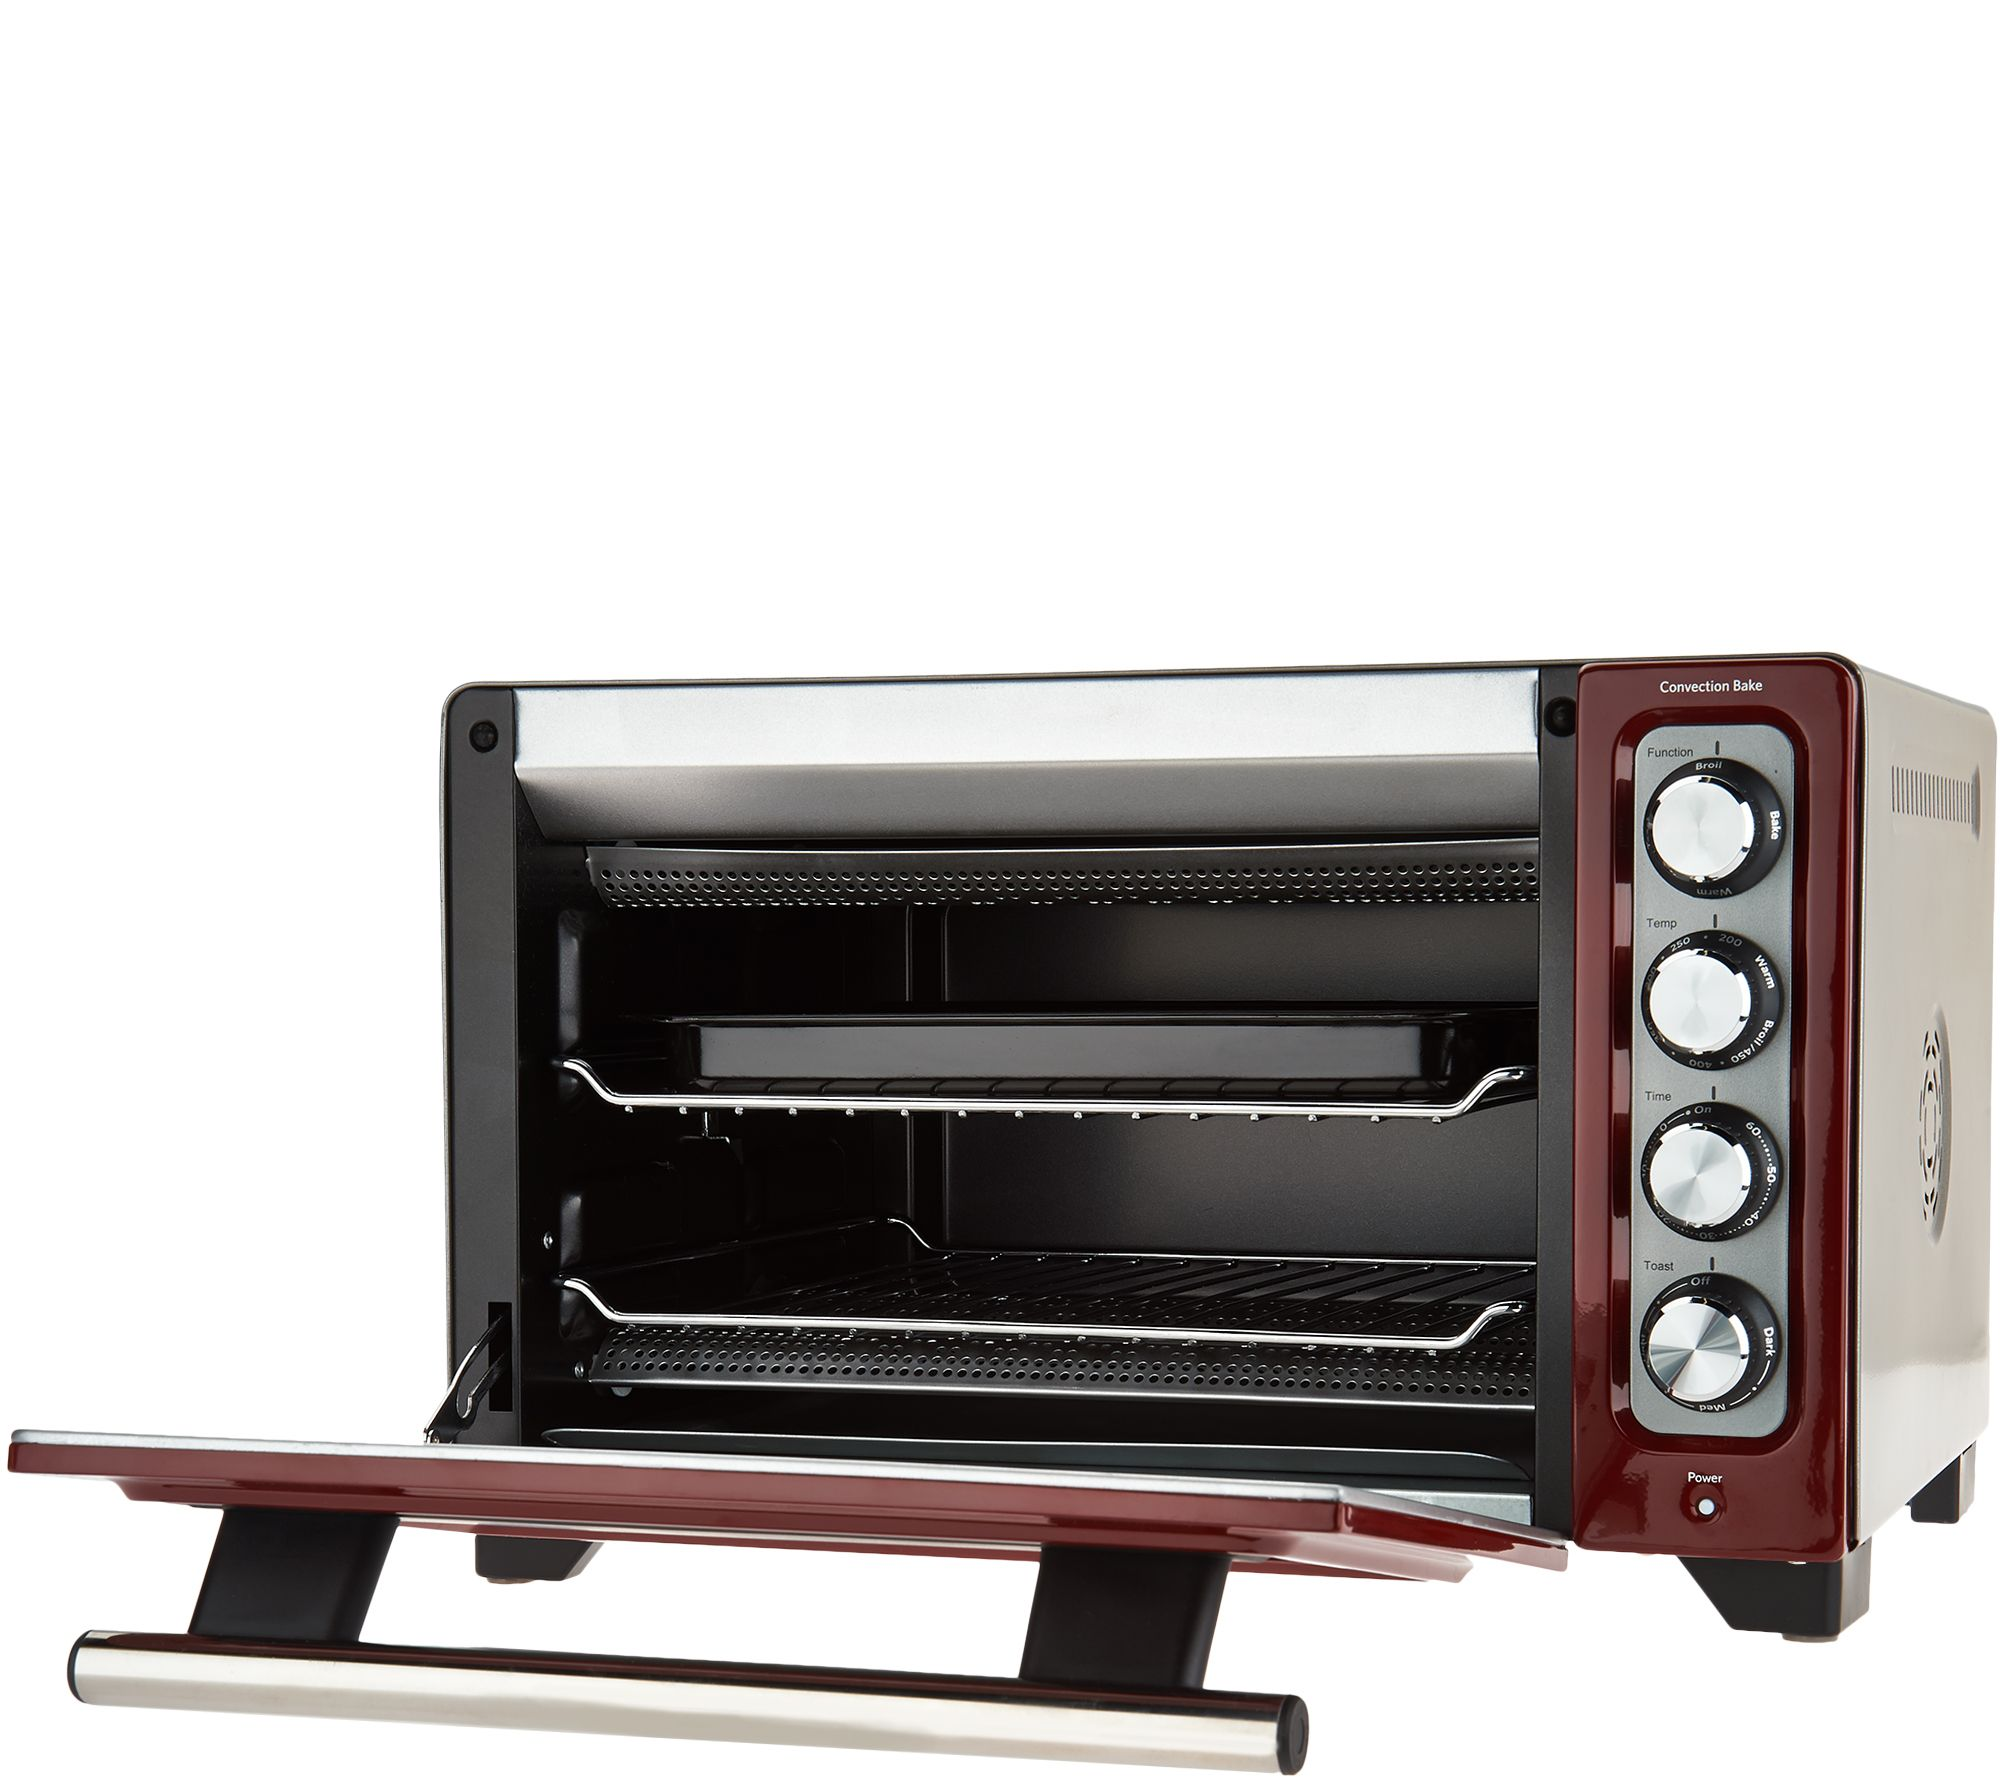 shipping retro free convection over toaster today slice stainless steel oven series home nostalgia overstock product garden